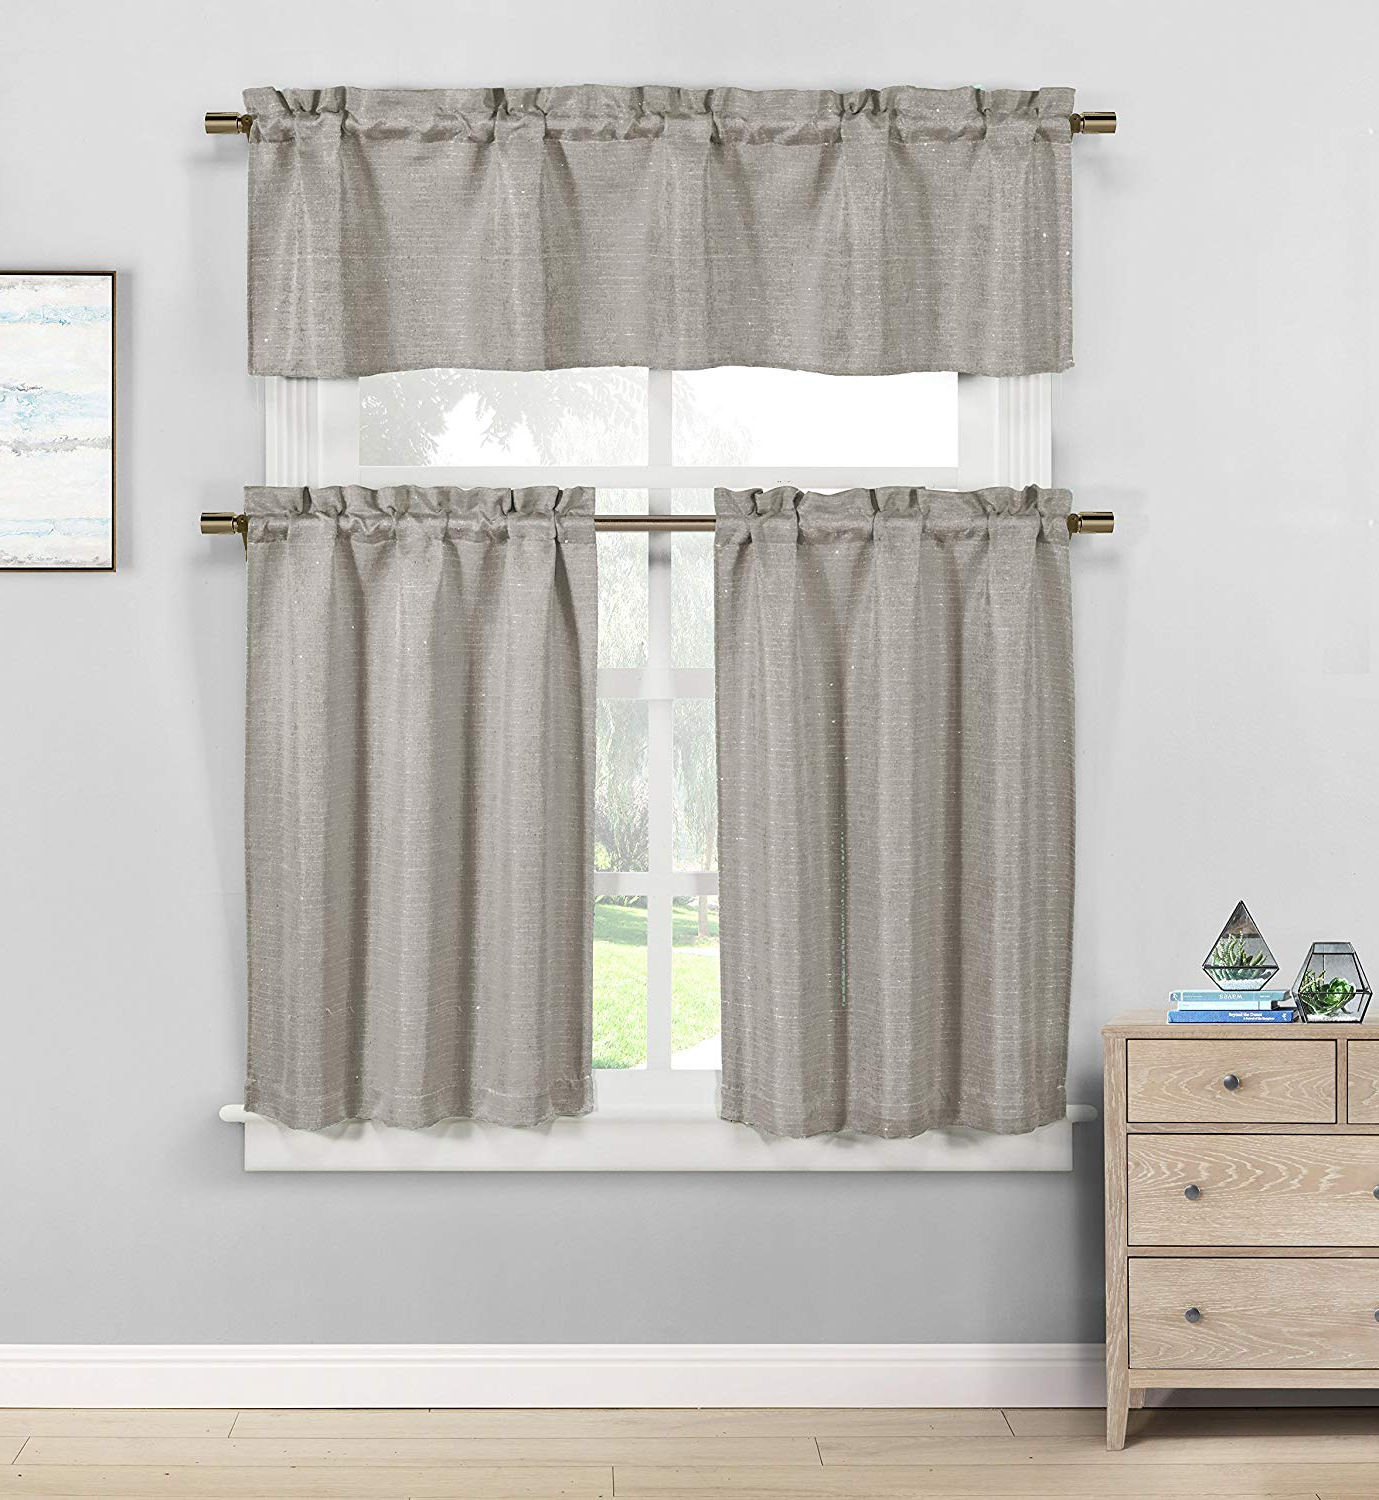 Most Recent Grey Window Curtain Tier And Valance Sets Inside Kensie Jane Linen Textured Sequin Jacquard Kitchen Tier & Valance Set (Gallery 3 of 20)